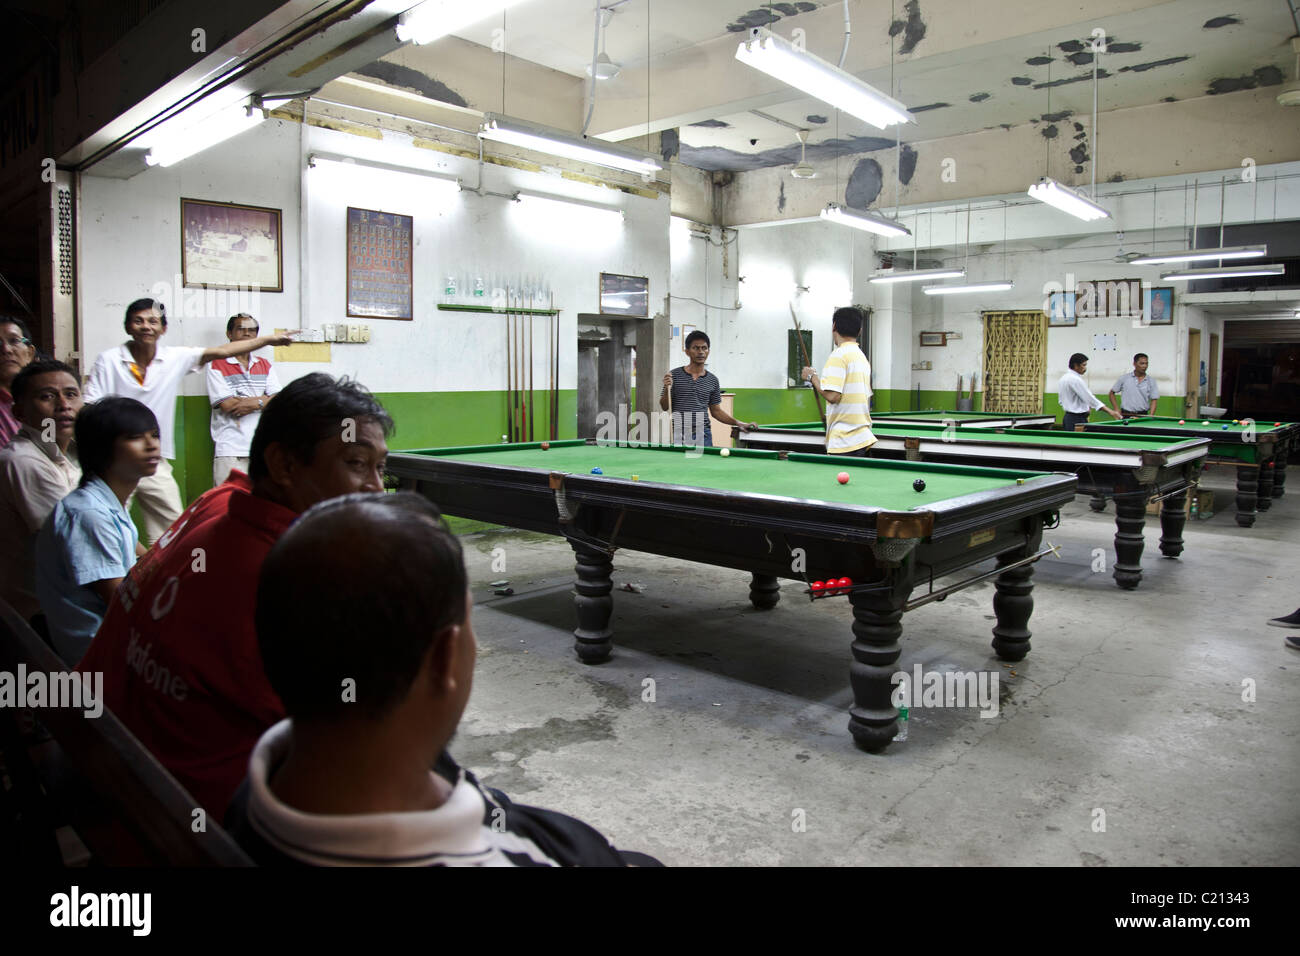 Malaysians playing pool / snooker in a shop with audience from the street, Sabah, Malaysia - Stock Image